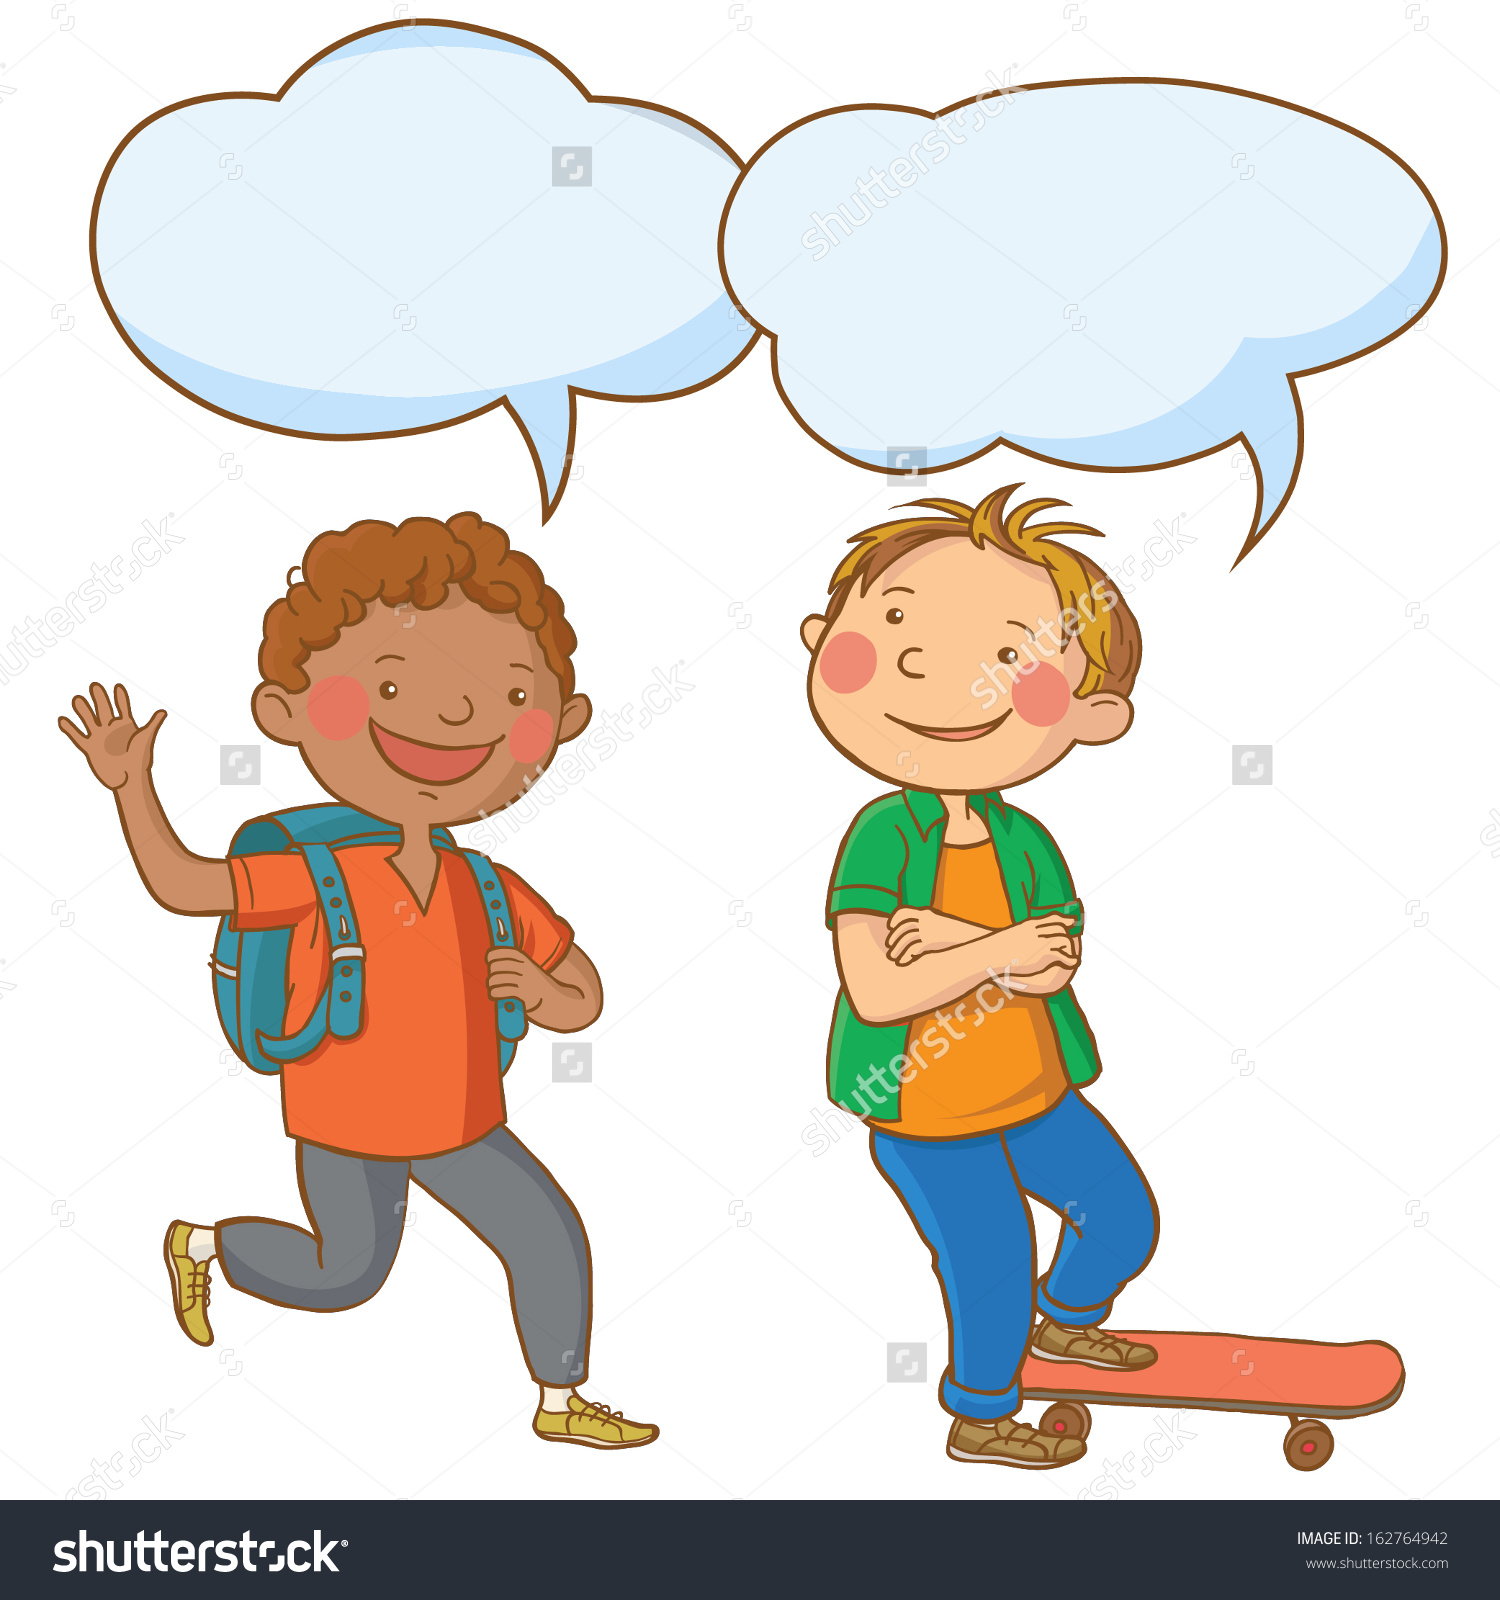 Clipart School Children Talking To Each Other At Tables.